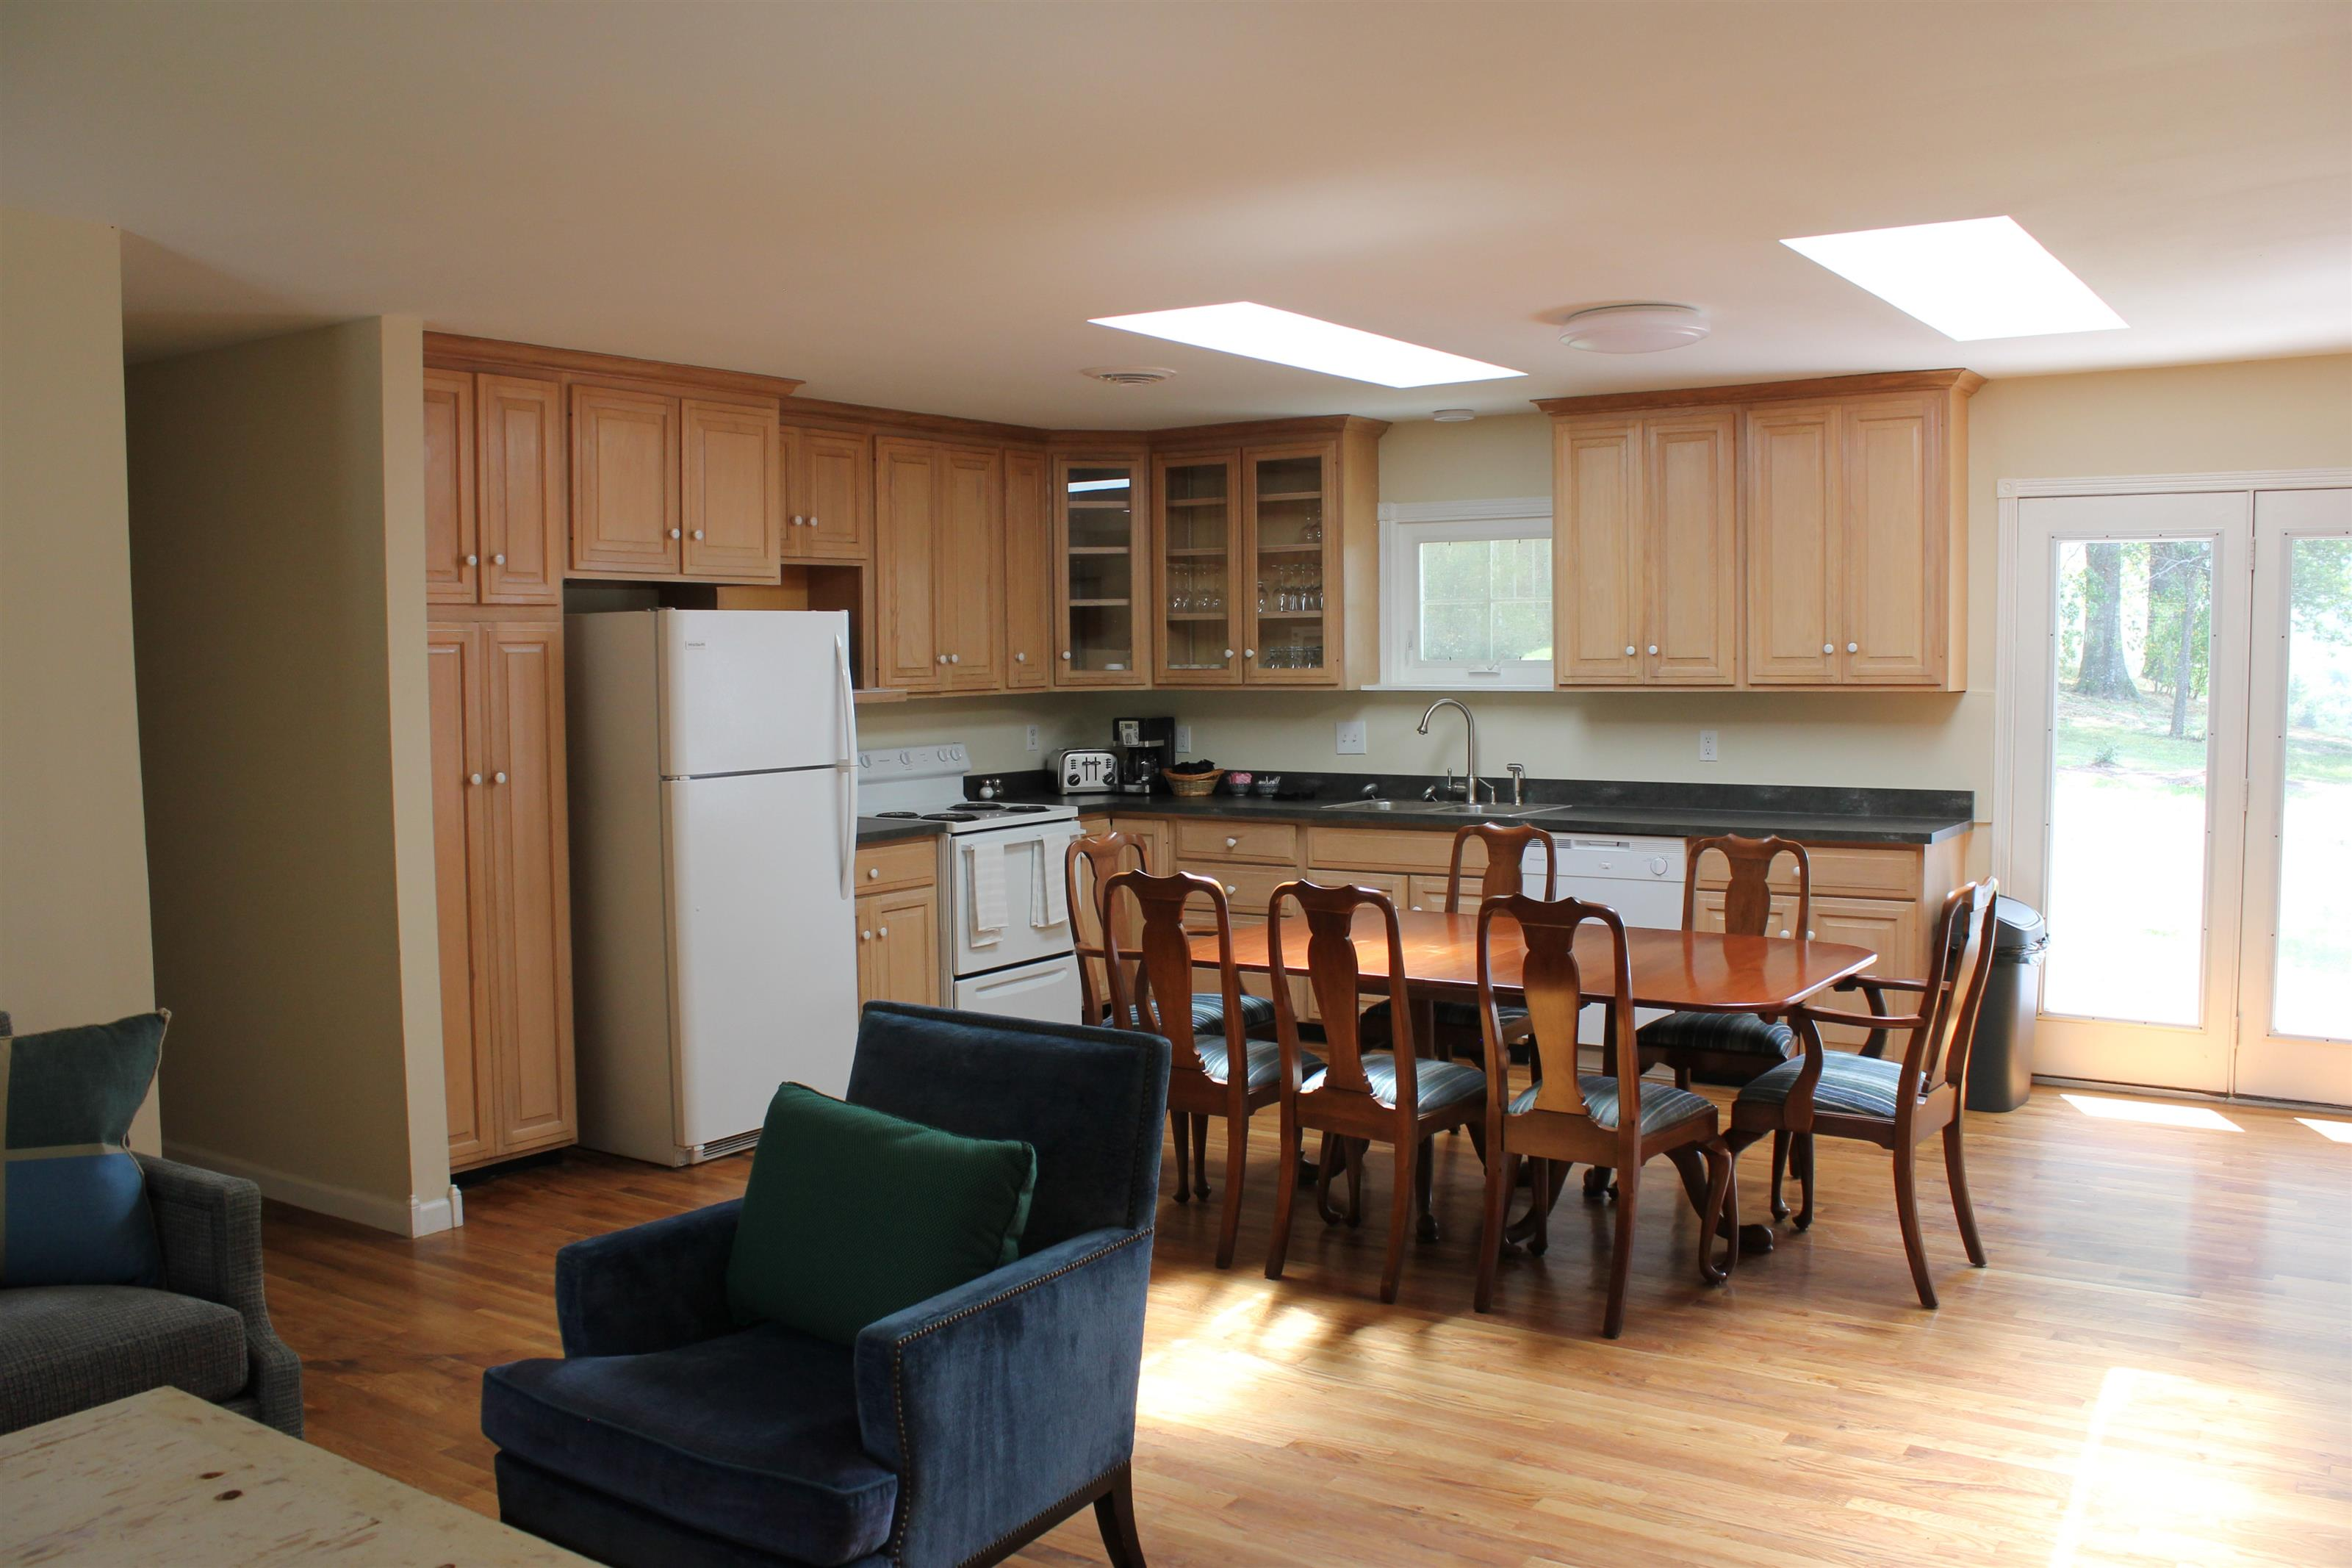 kitchen with kitchen table and chairs